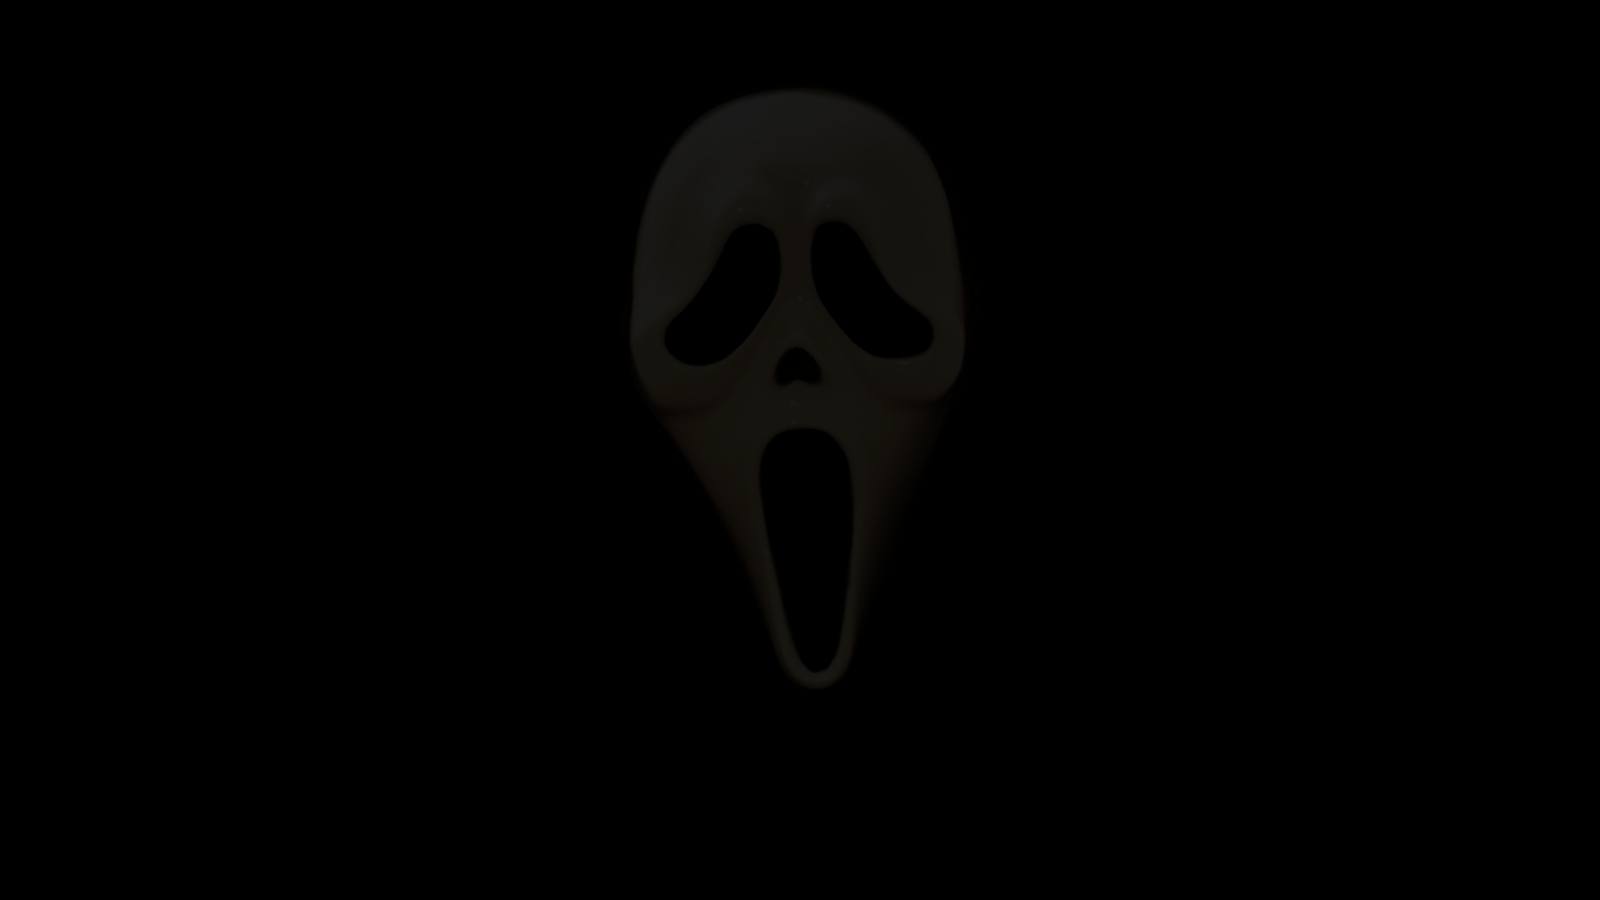 Scream Wallpapers Top Free Scream Backgrounds